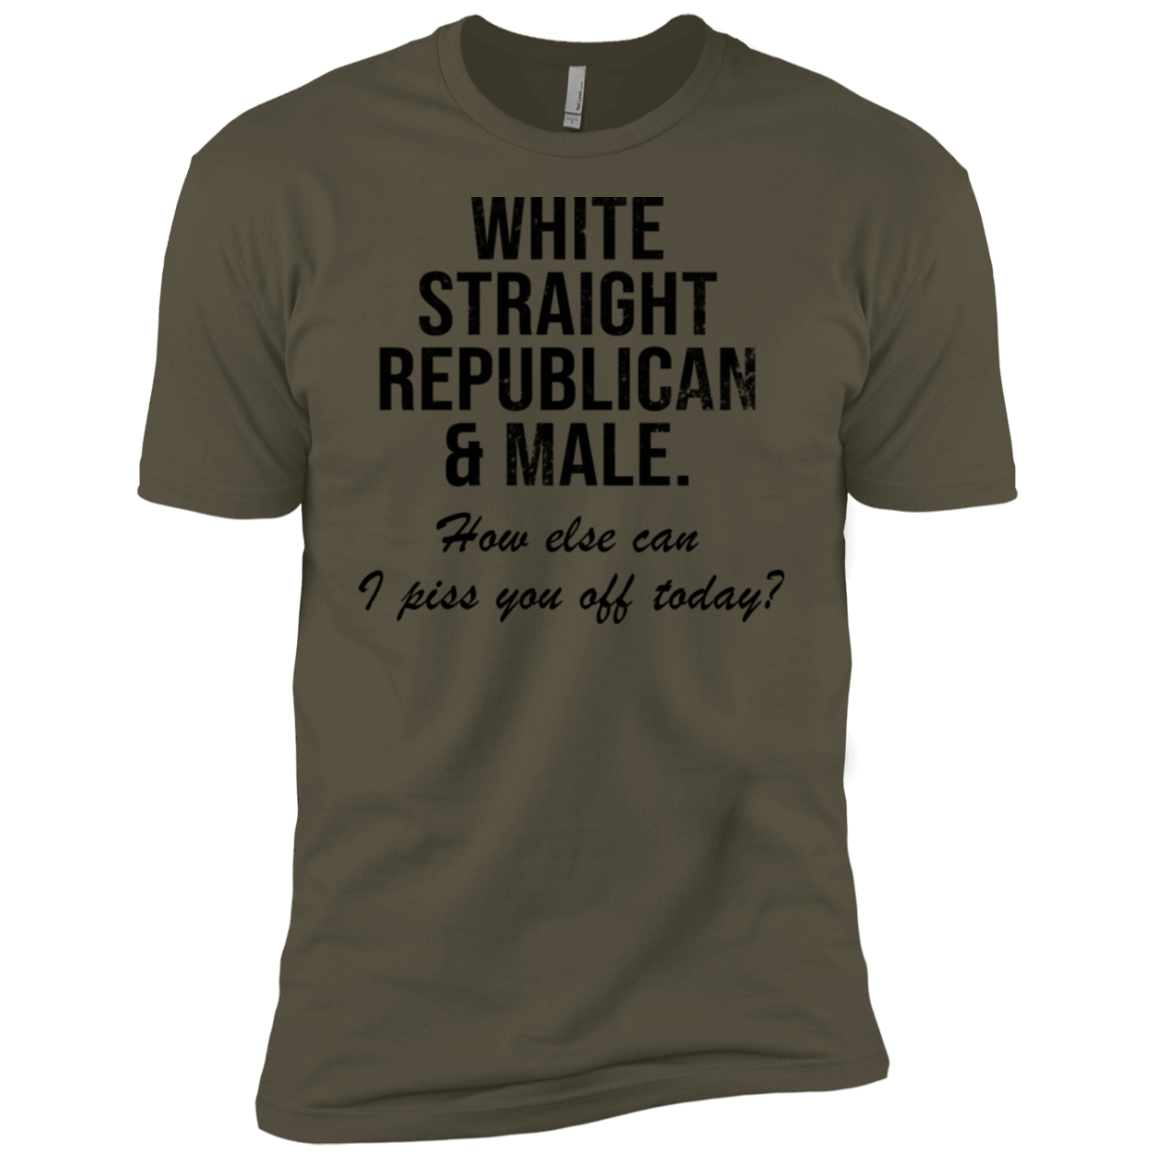 White Straight Republican Male How Else Can I Piss You Off Today Men's Classic Tee